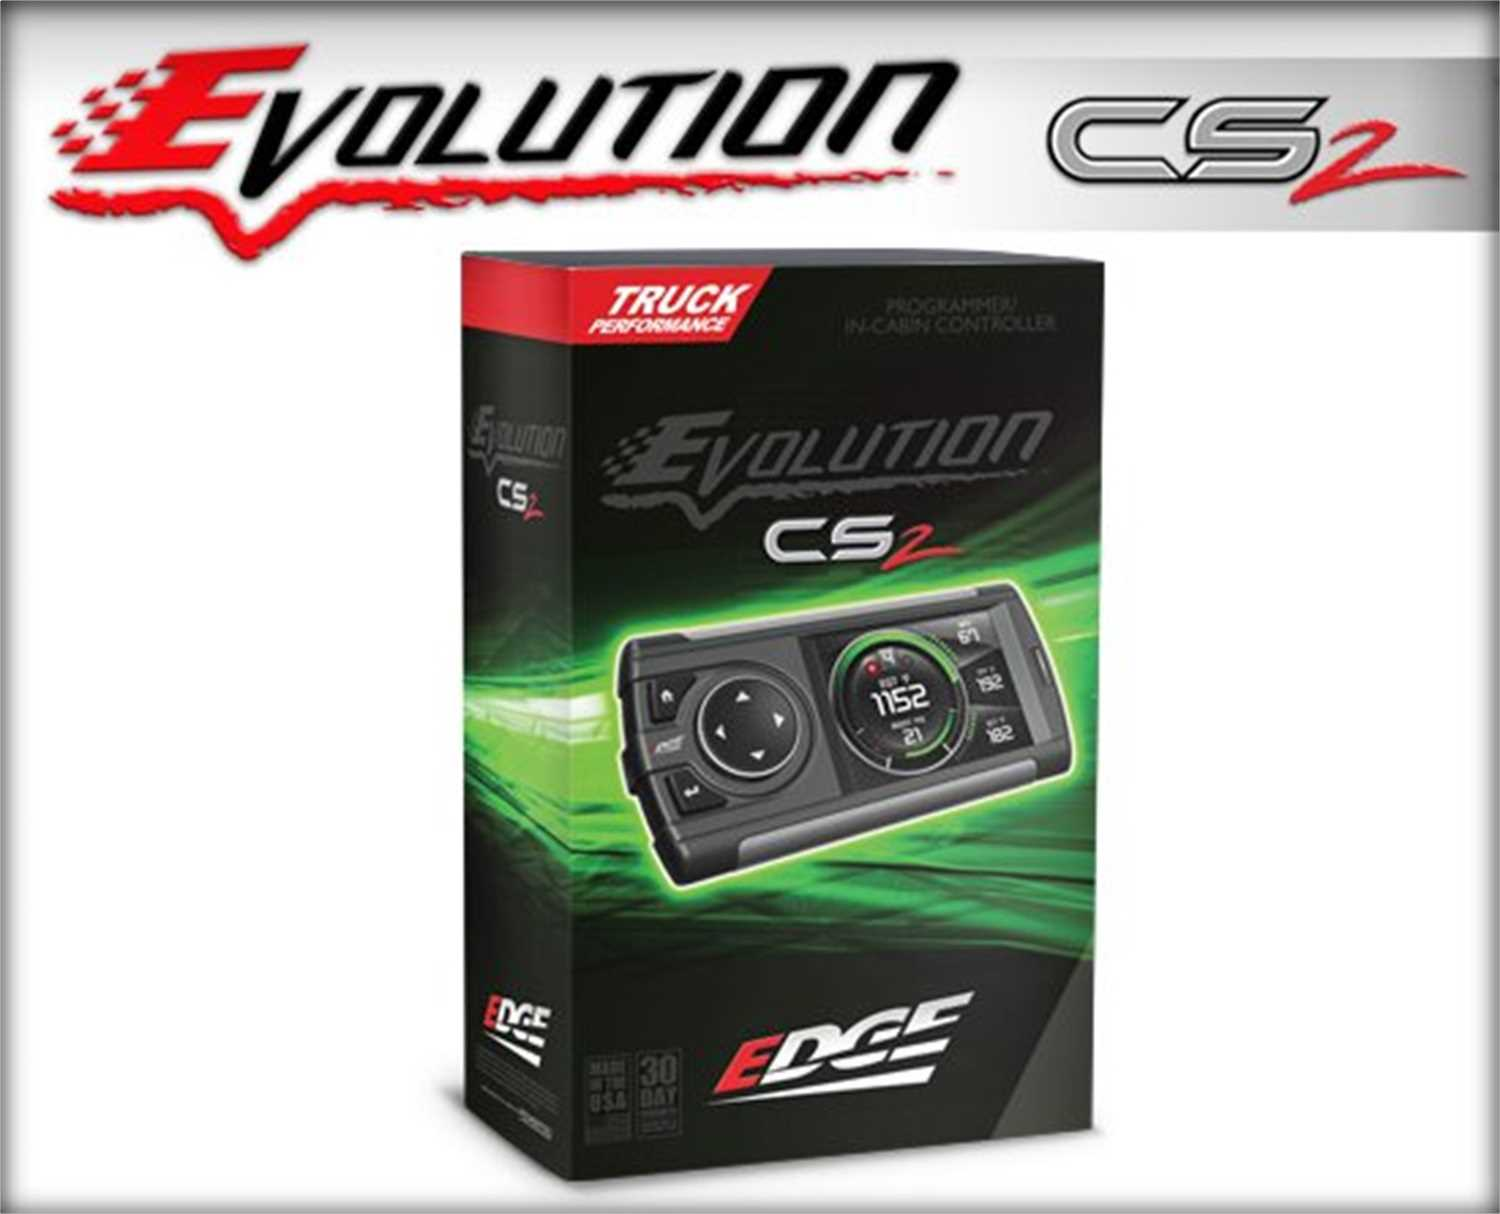 Edge Products CS2 Diesel Evolution Programmer 85300